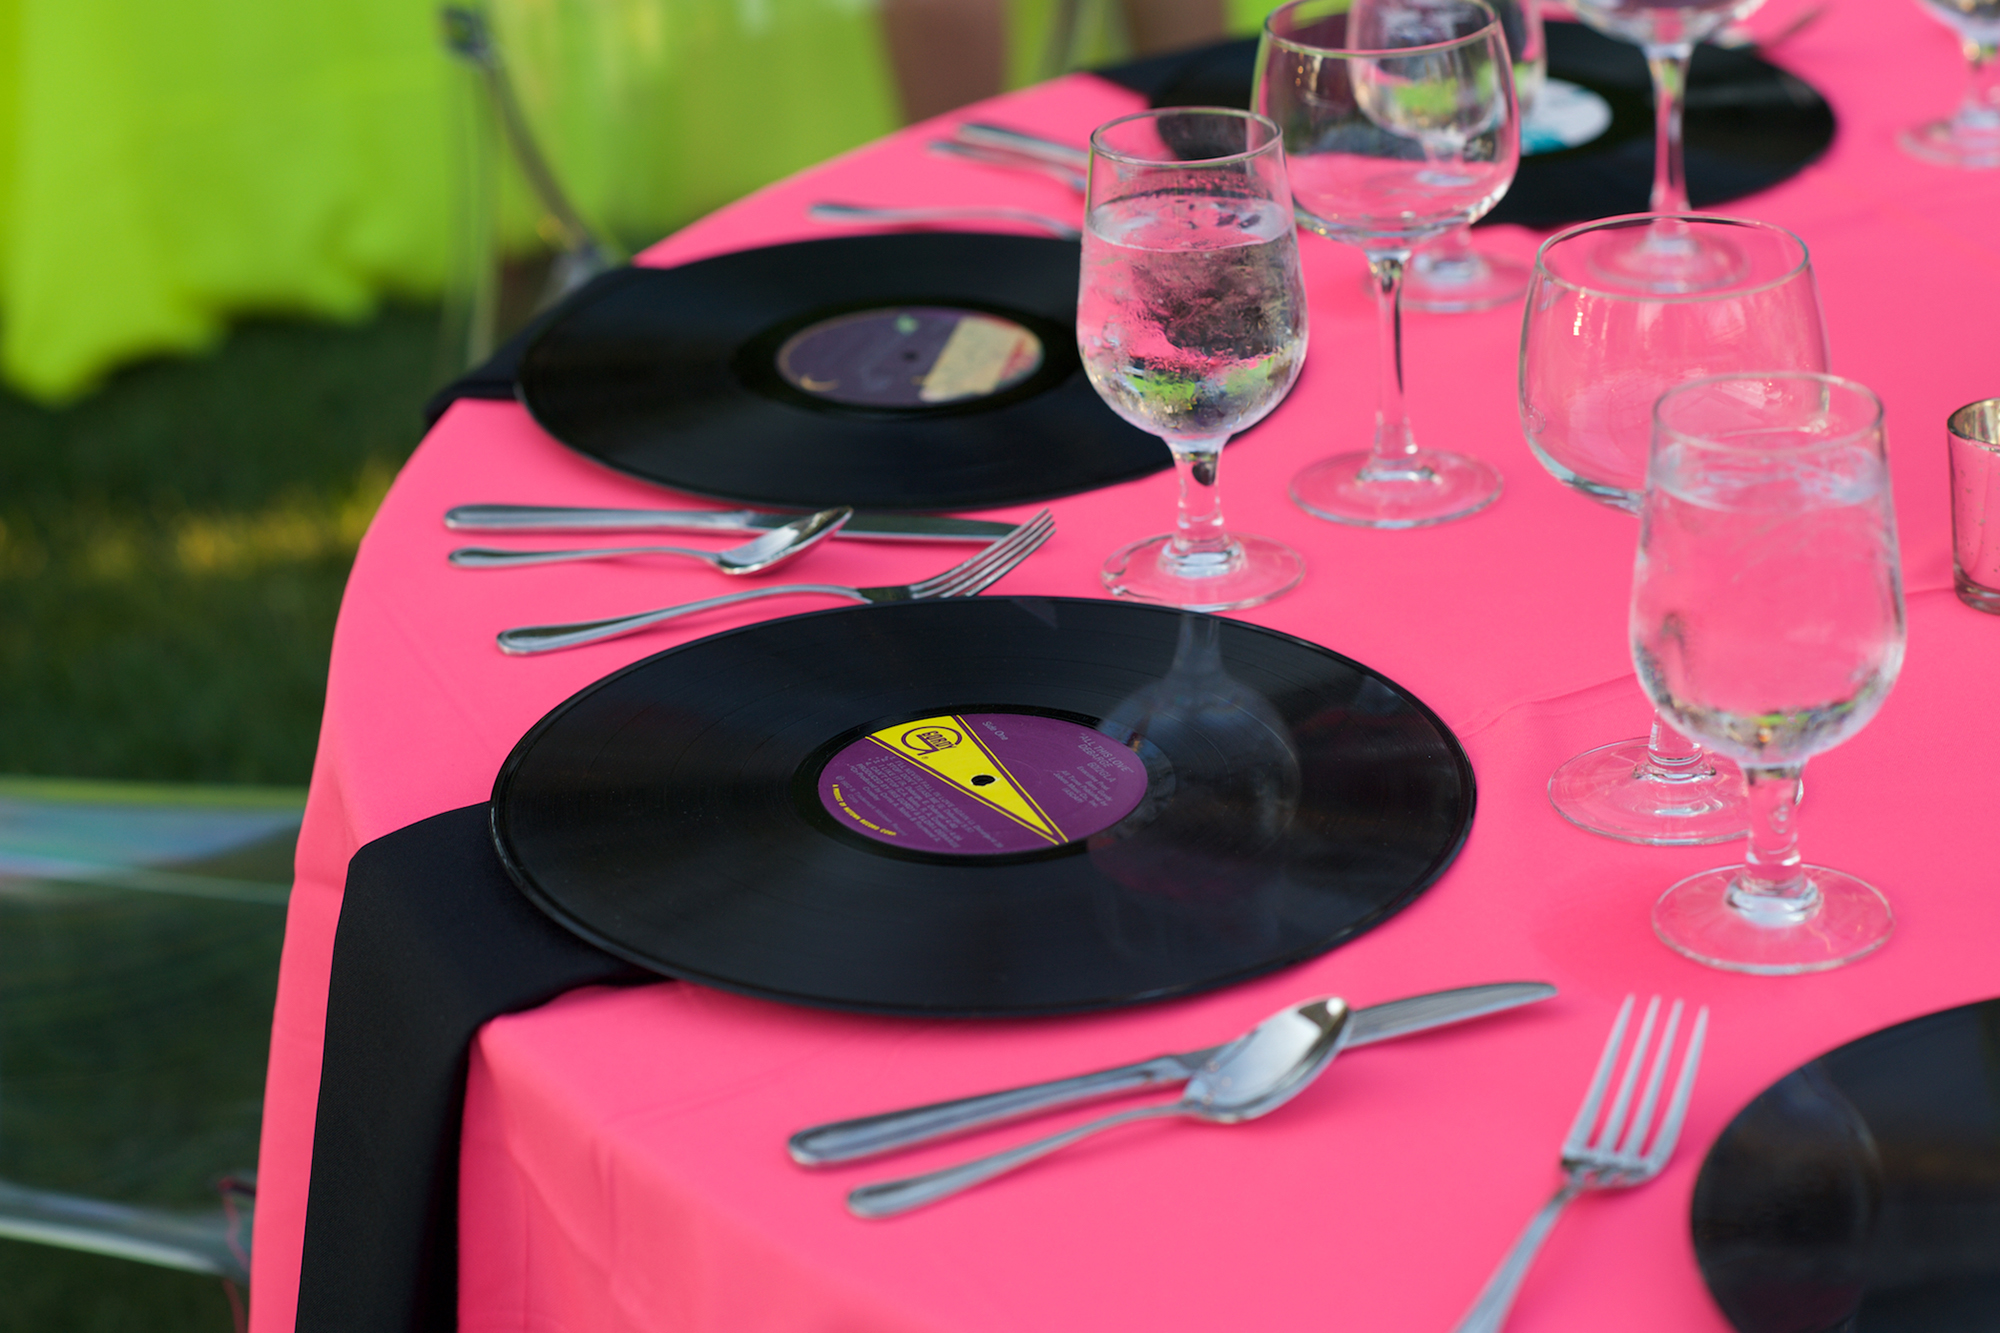 05_Birthday Party 80s Theme Records Table_AE Events.jpg